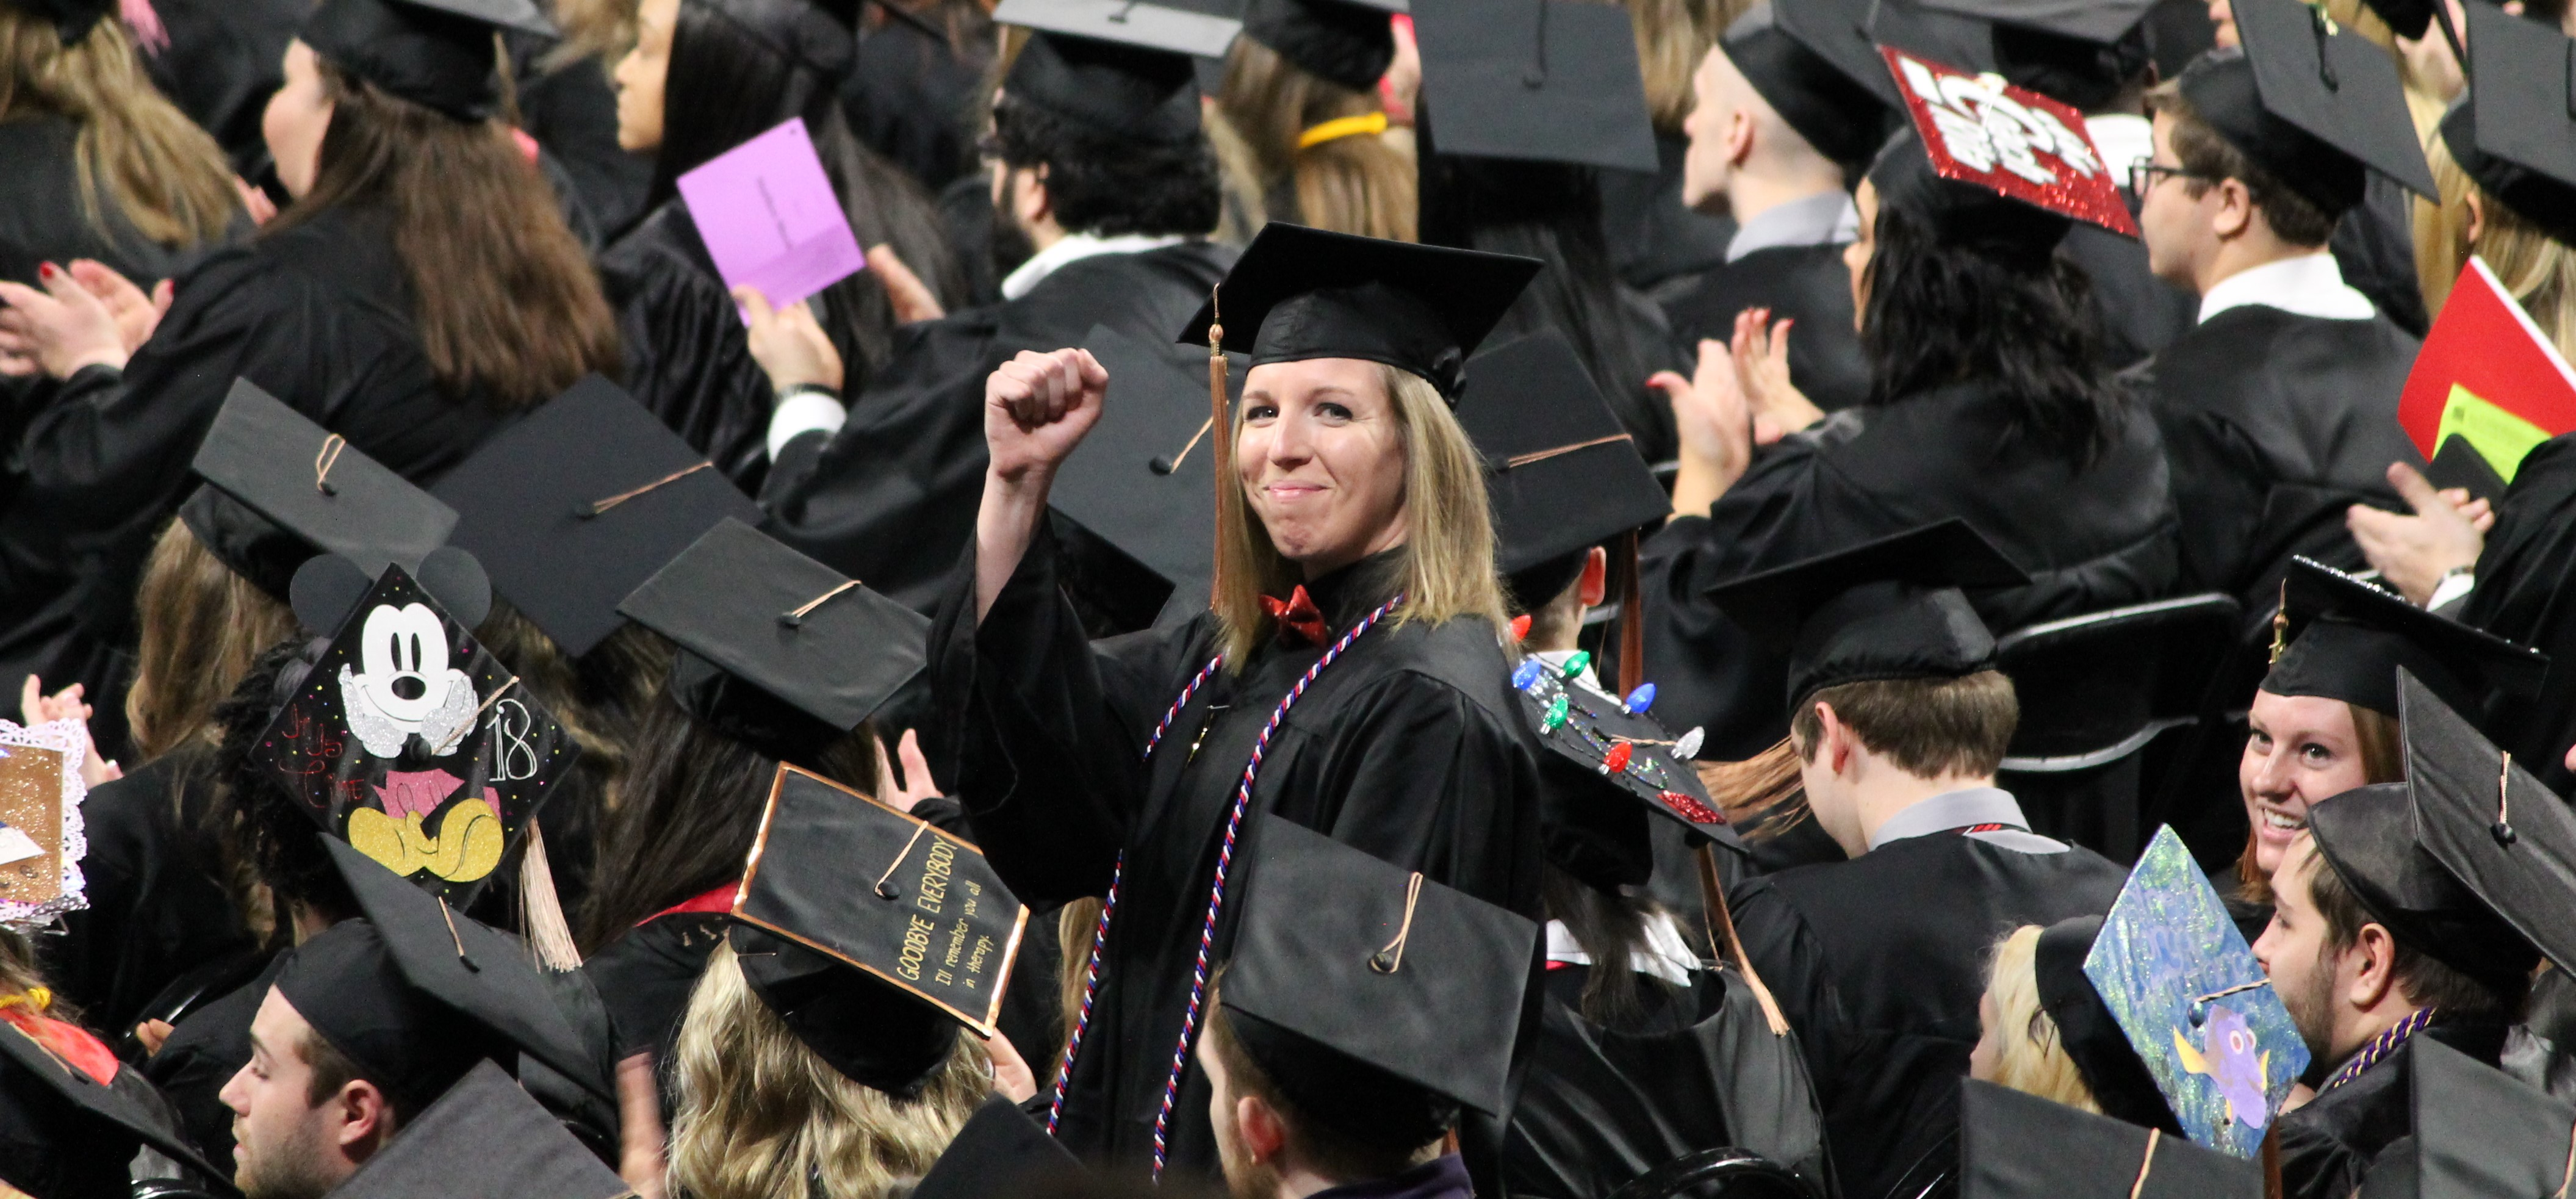 Graduate raising hand in celebration in crowd of fellow graduates at Commencement Ceremony.